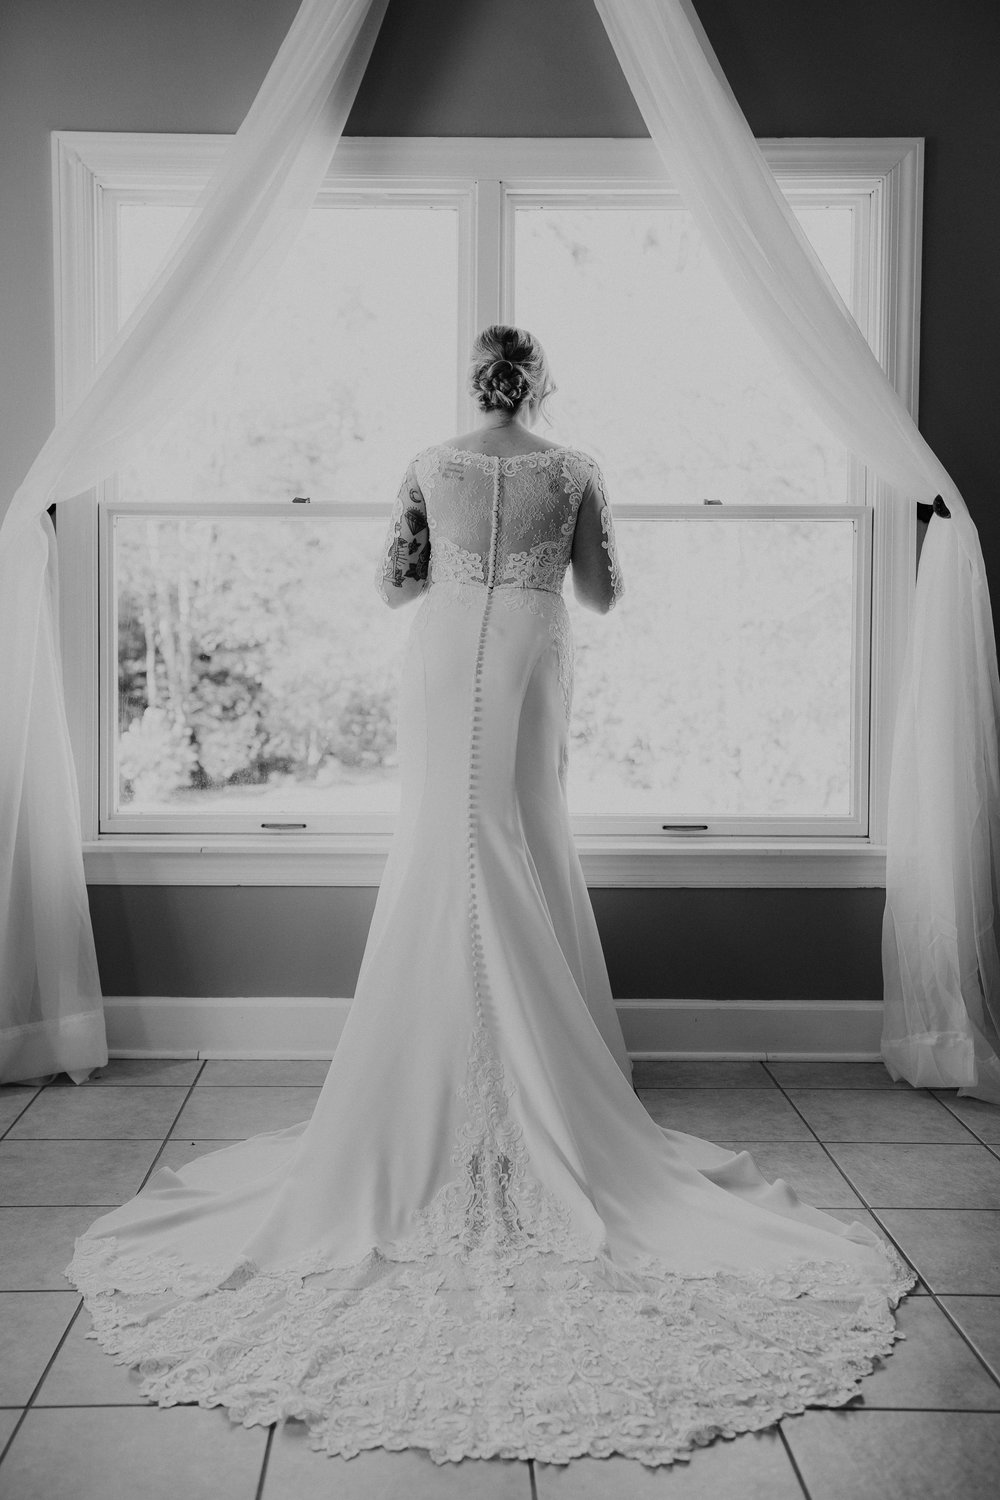 Gorgeous Wedding Dress Photos - Dara's Garden Knoxville East Tennessee Wedding — The Overwhelmed Bride Wedding Blog